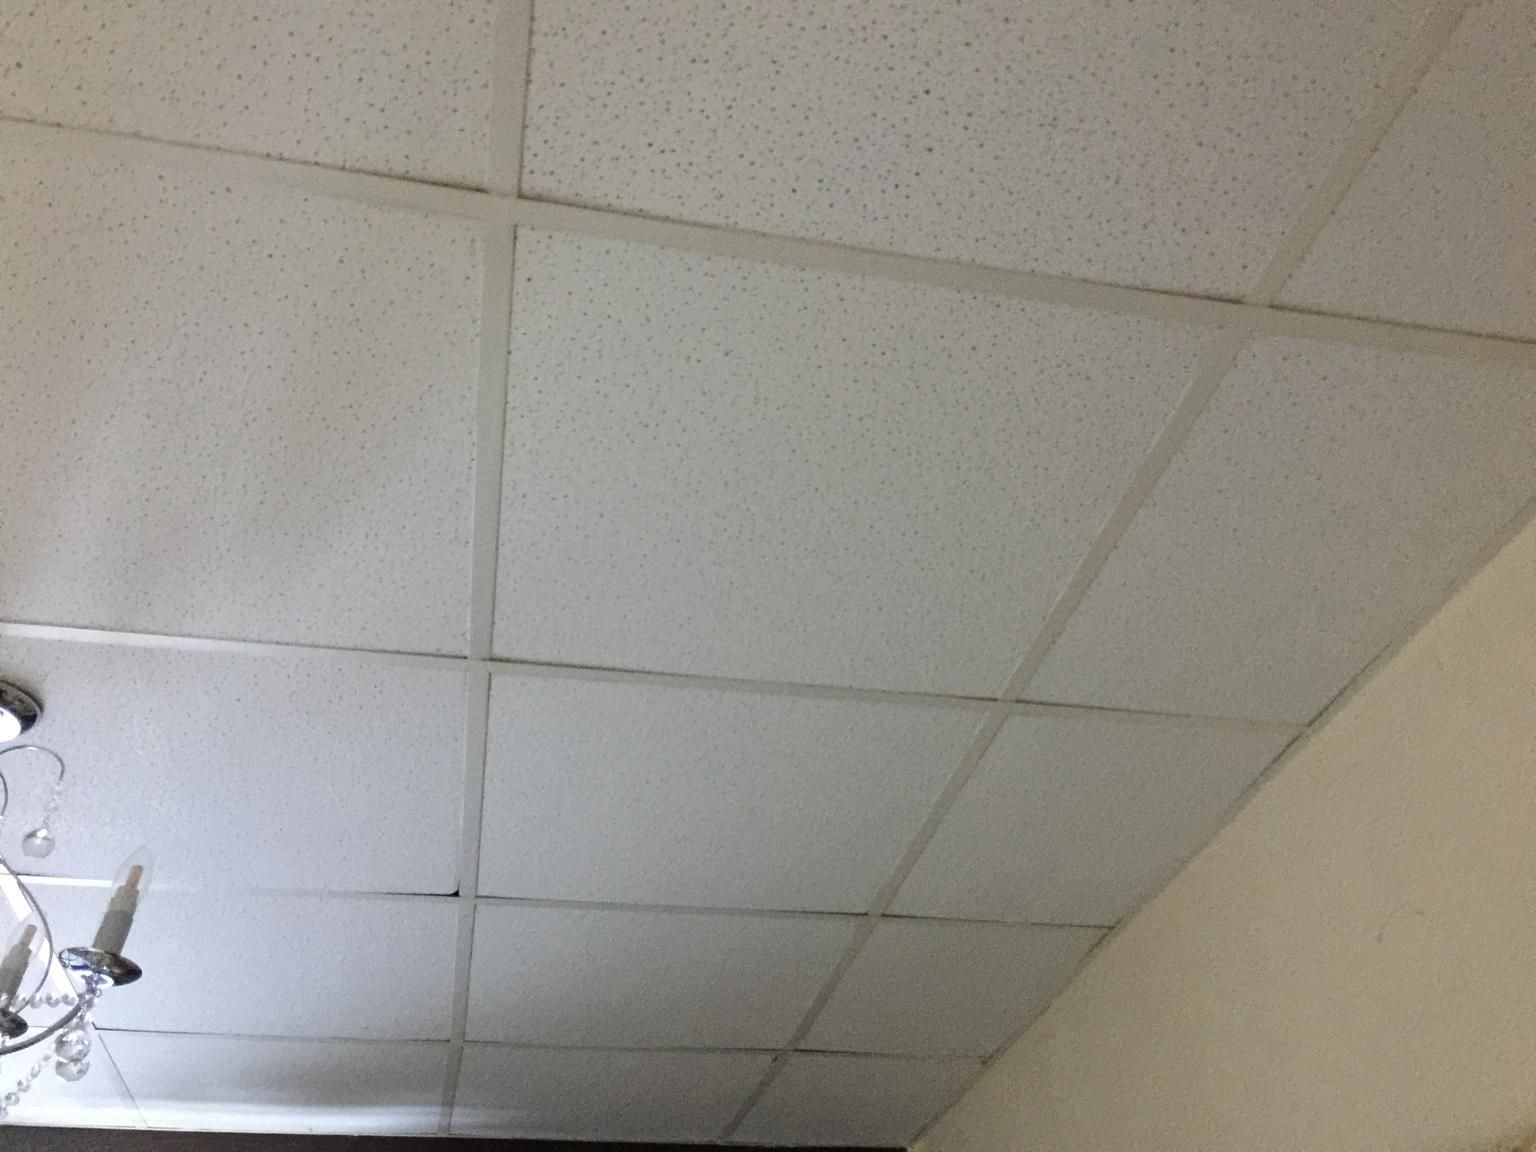 Asbestos Ceiling Tiles How To Recognize Ceiling Tiles That May